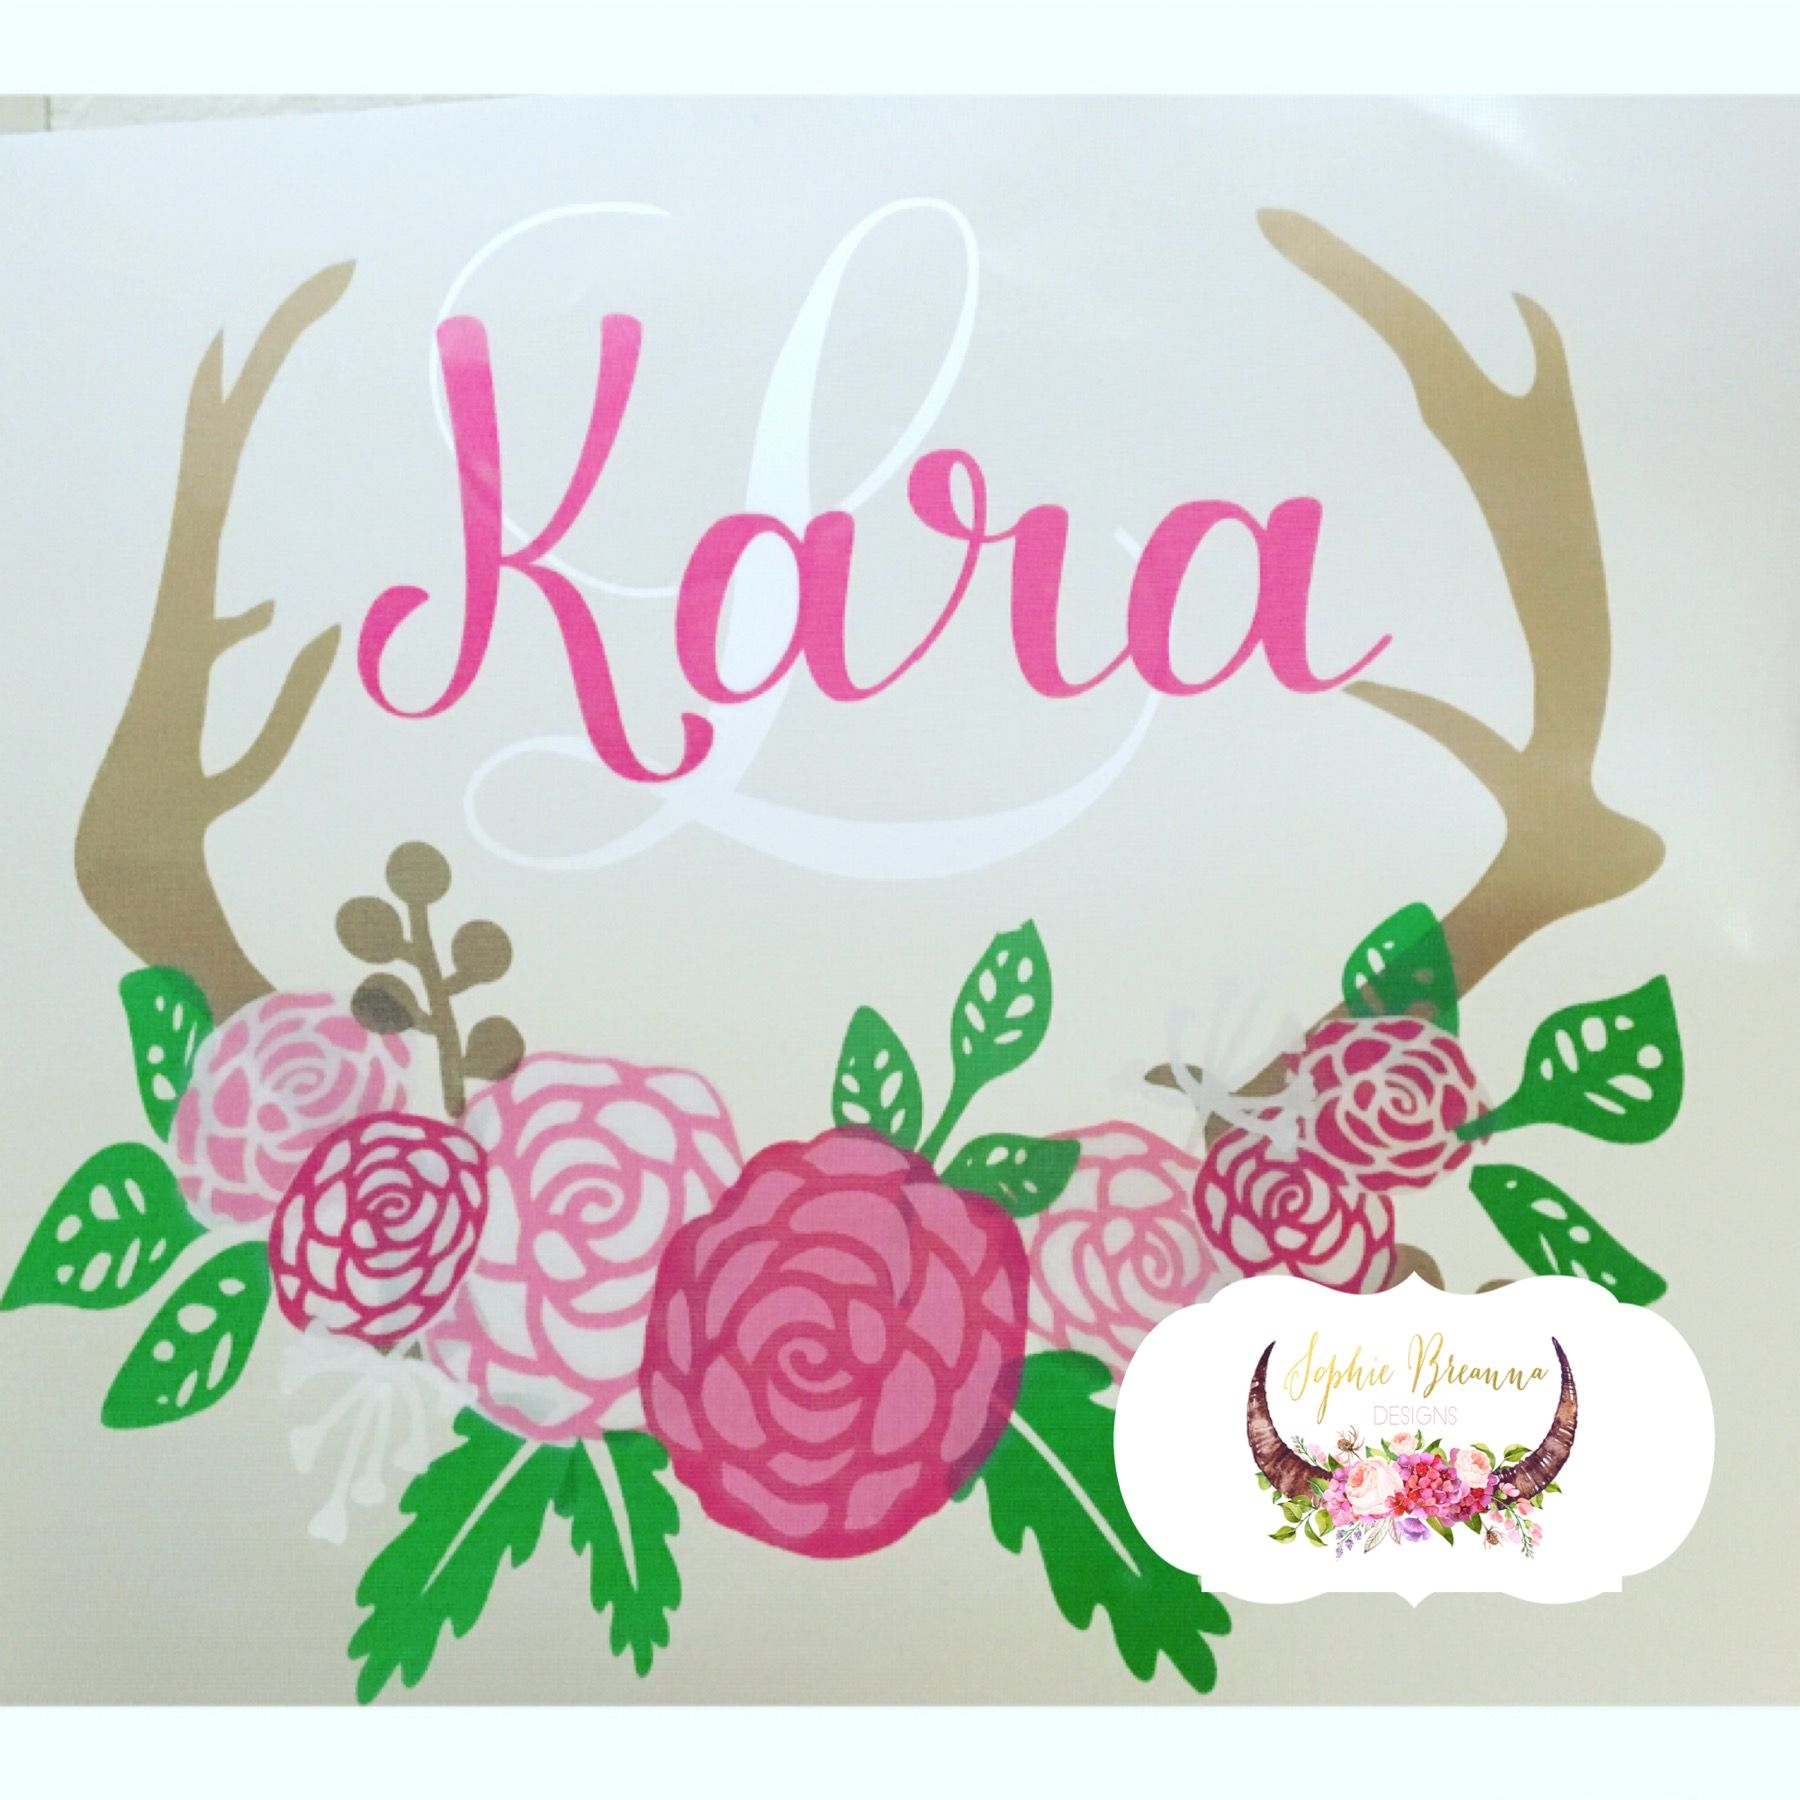 Floral Monogram Decal Shop Sophie Breanna Designs On Etsy - Custom vinyl decals etsy